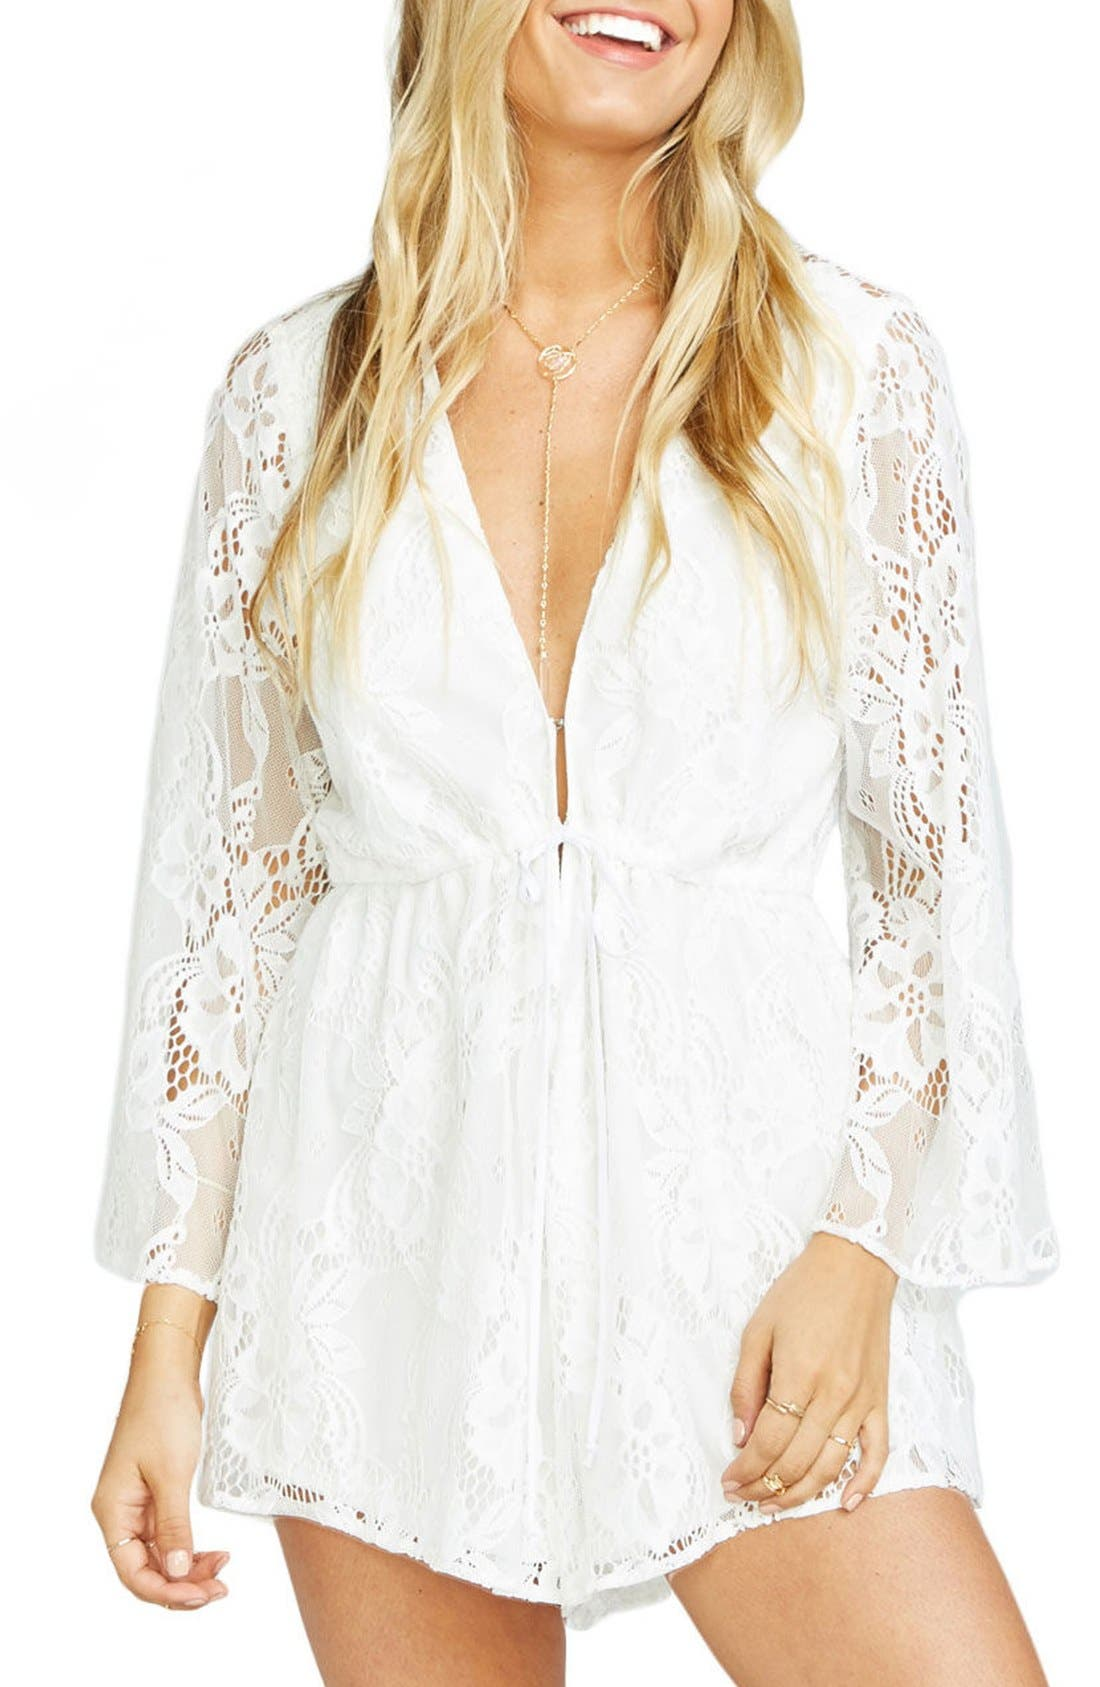 Main Image - Show Me Your Mumu Roxy Plunging Tie Waist Romper